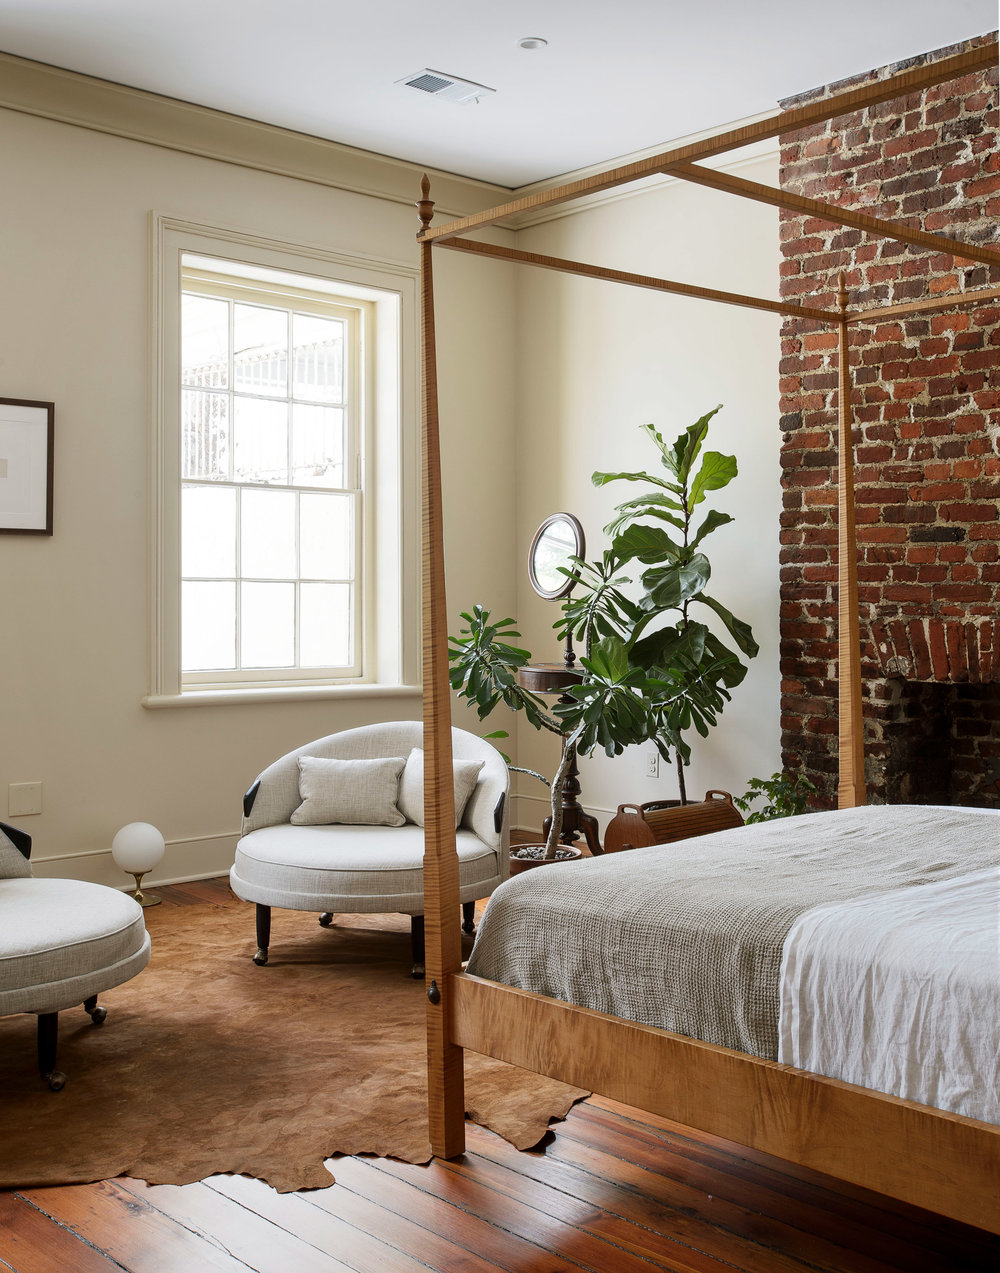 workstead-house-charleston-south-carolina-renovation-workstead_dezeen_2364_col_11.jpg